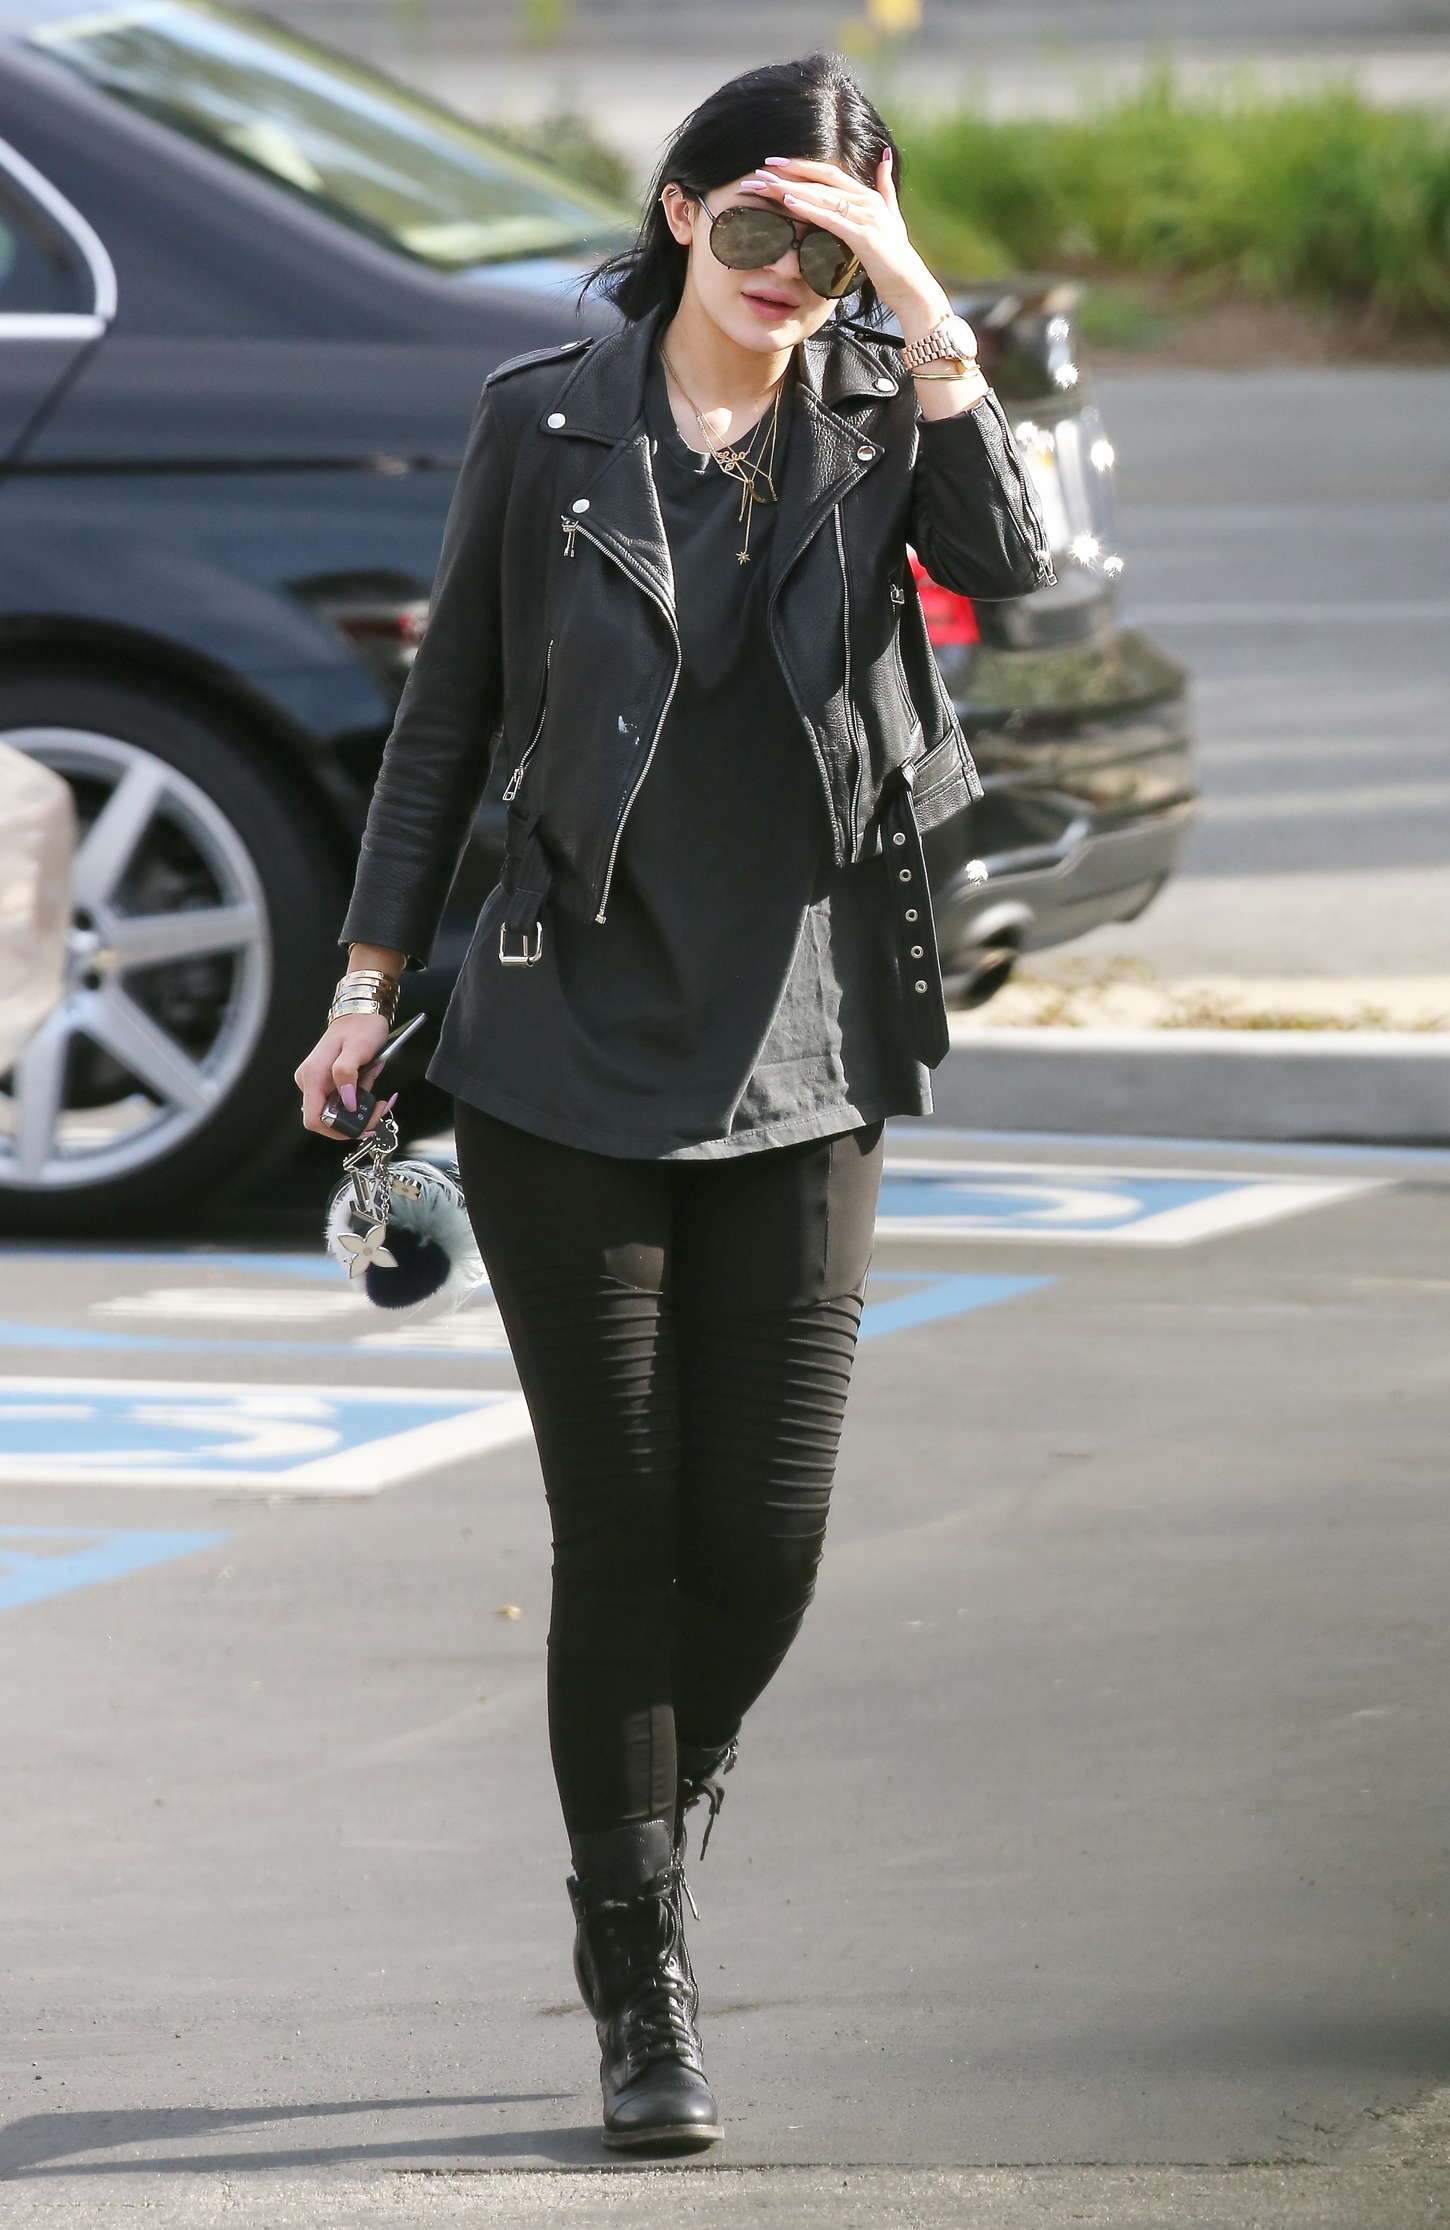 Leather jacket olx - Kylie Jenner In Tights And Leather Jacket 16 Gotceleb